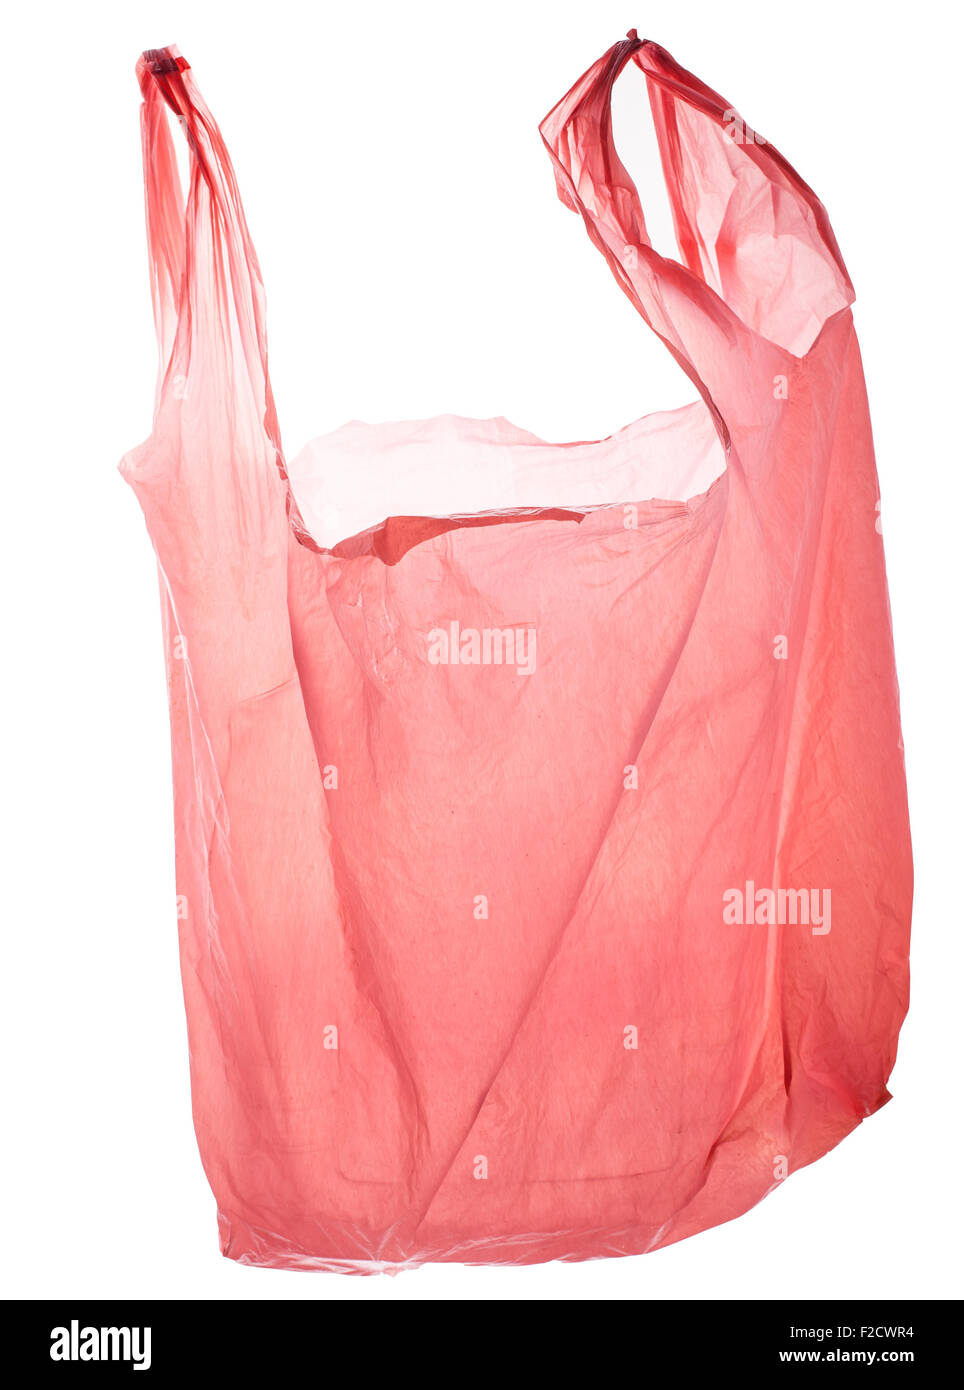 Empty pink plastic bag, back lit, floating - Stock Image